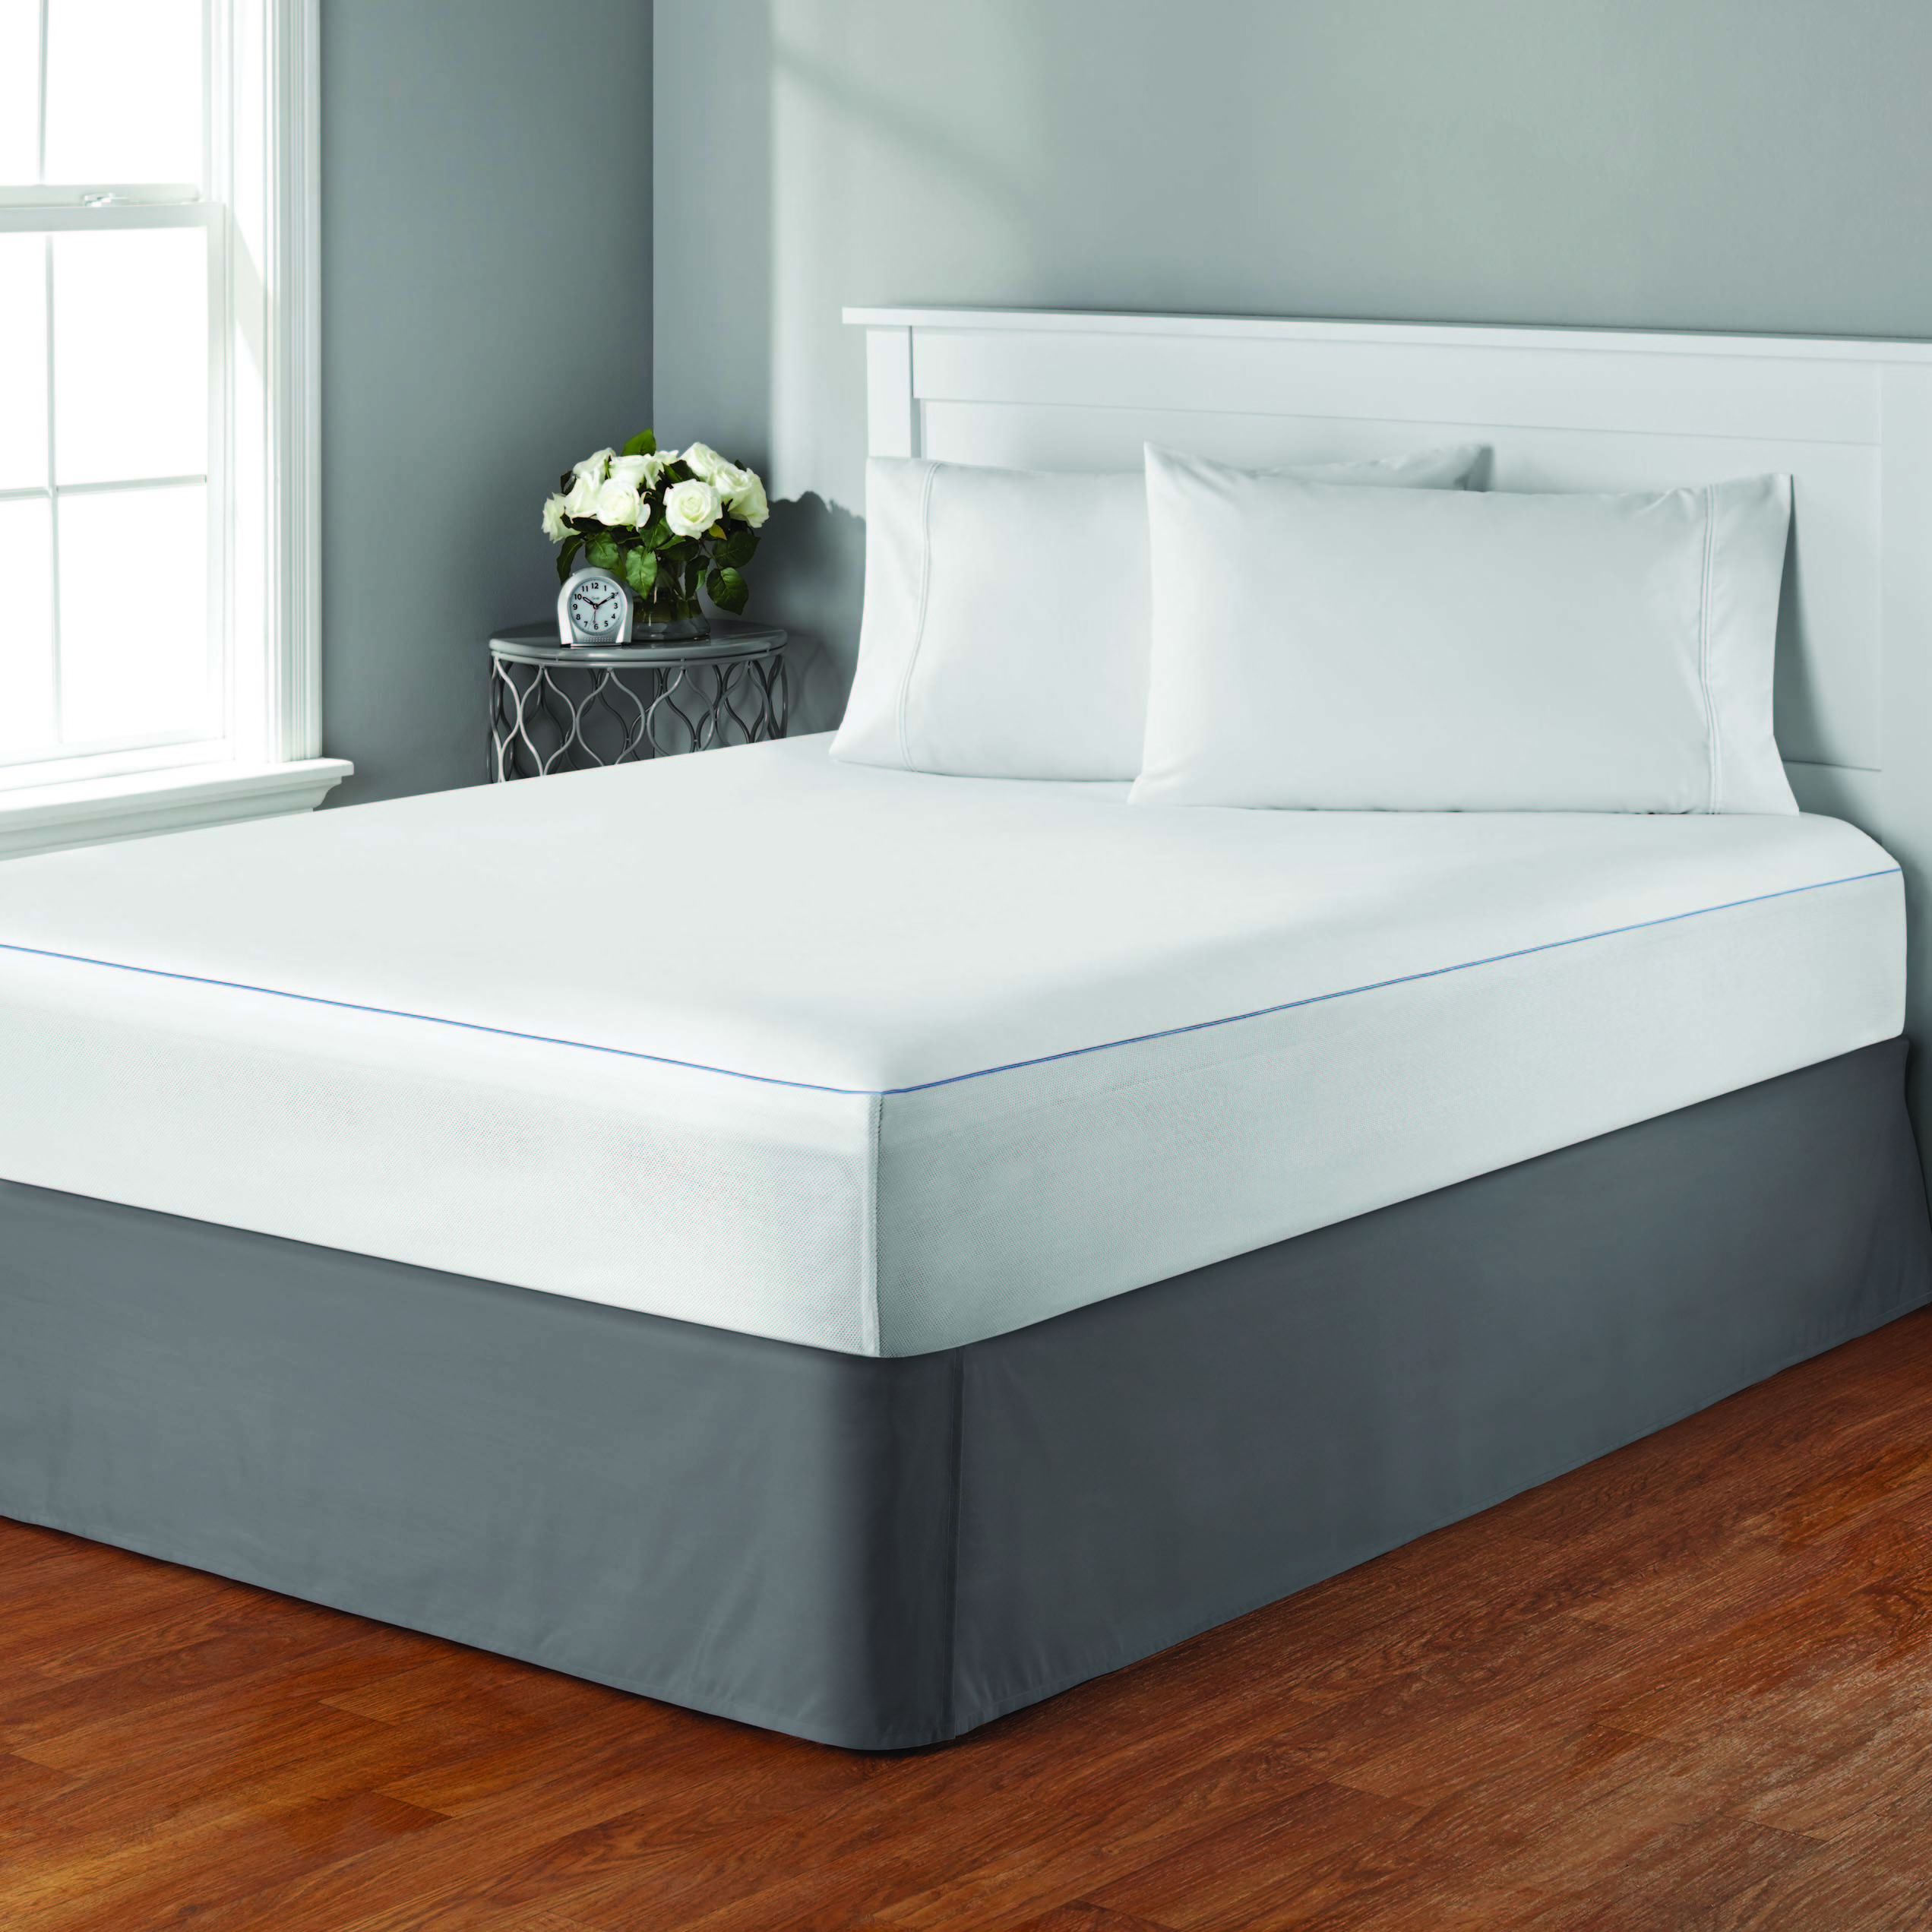 A mattress protector on top of a bed